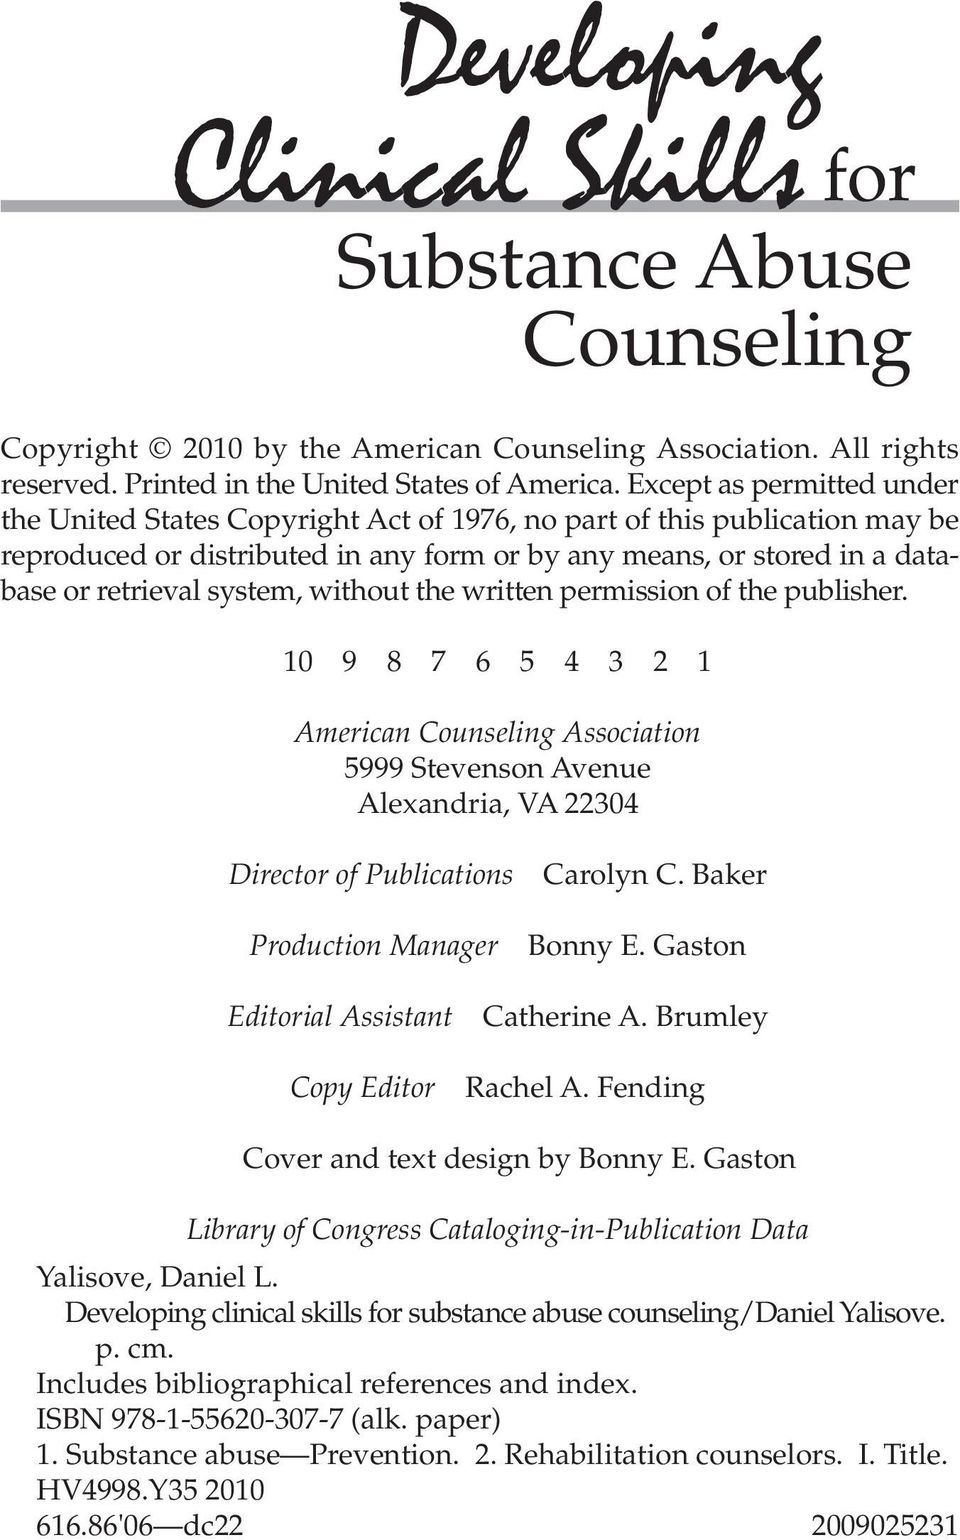 system, without the written permission of the publisher. 10 9 8 7 6 5 4 3 2 1 American Counseling Association 5999 Stevenson Avenue Alexandria, VA 22304 Director of Publications Carolyn C.